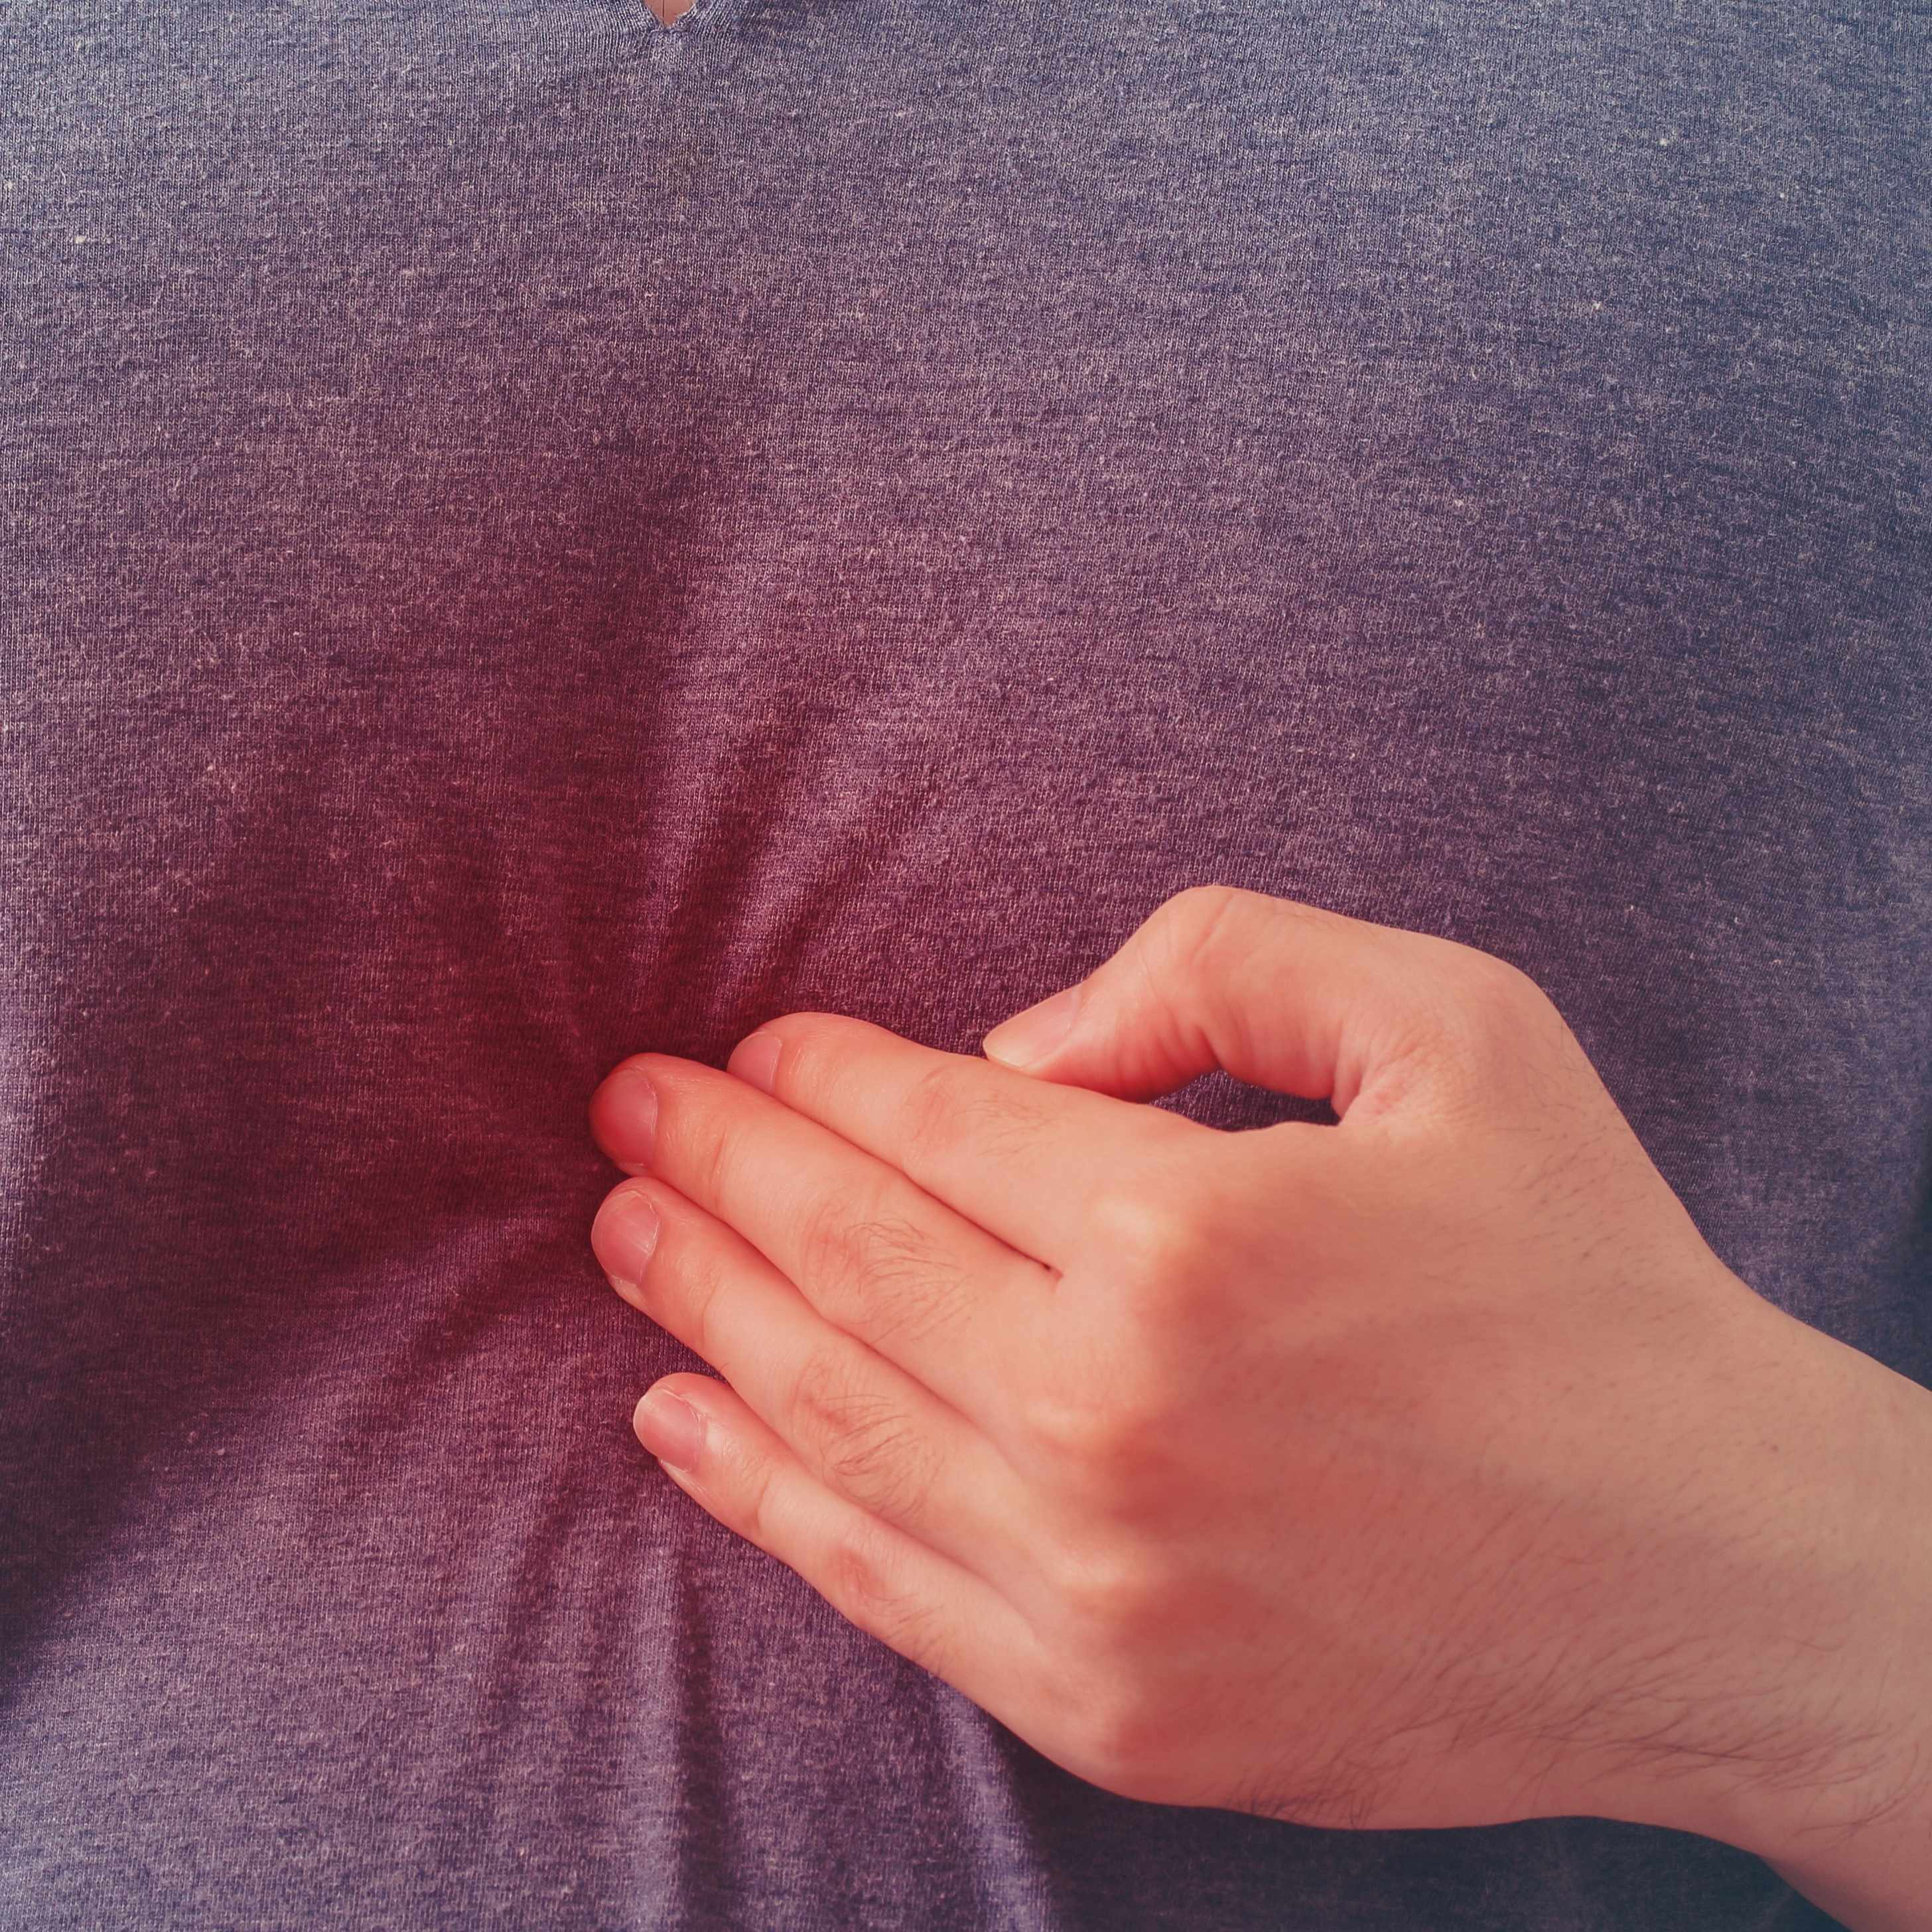 a man in pain pressing his chest with his hand indicating heartburn or heart attack